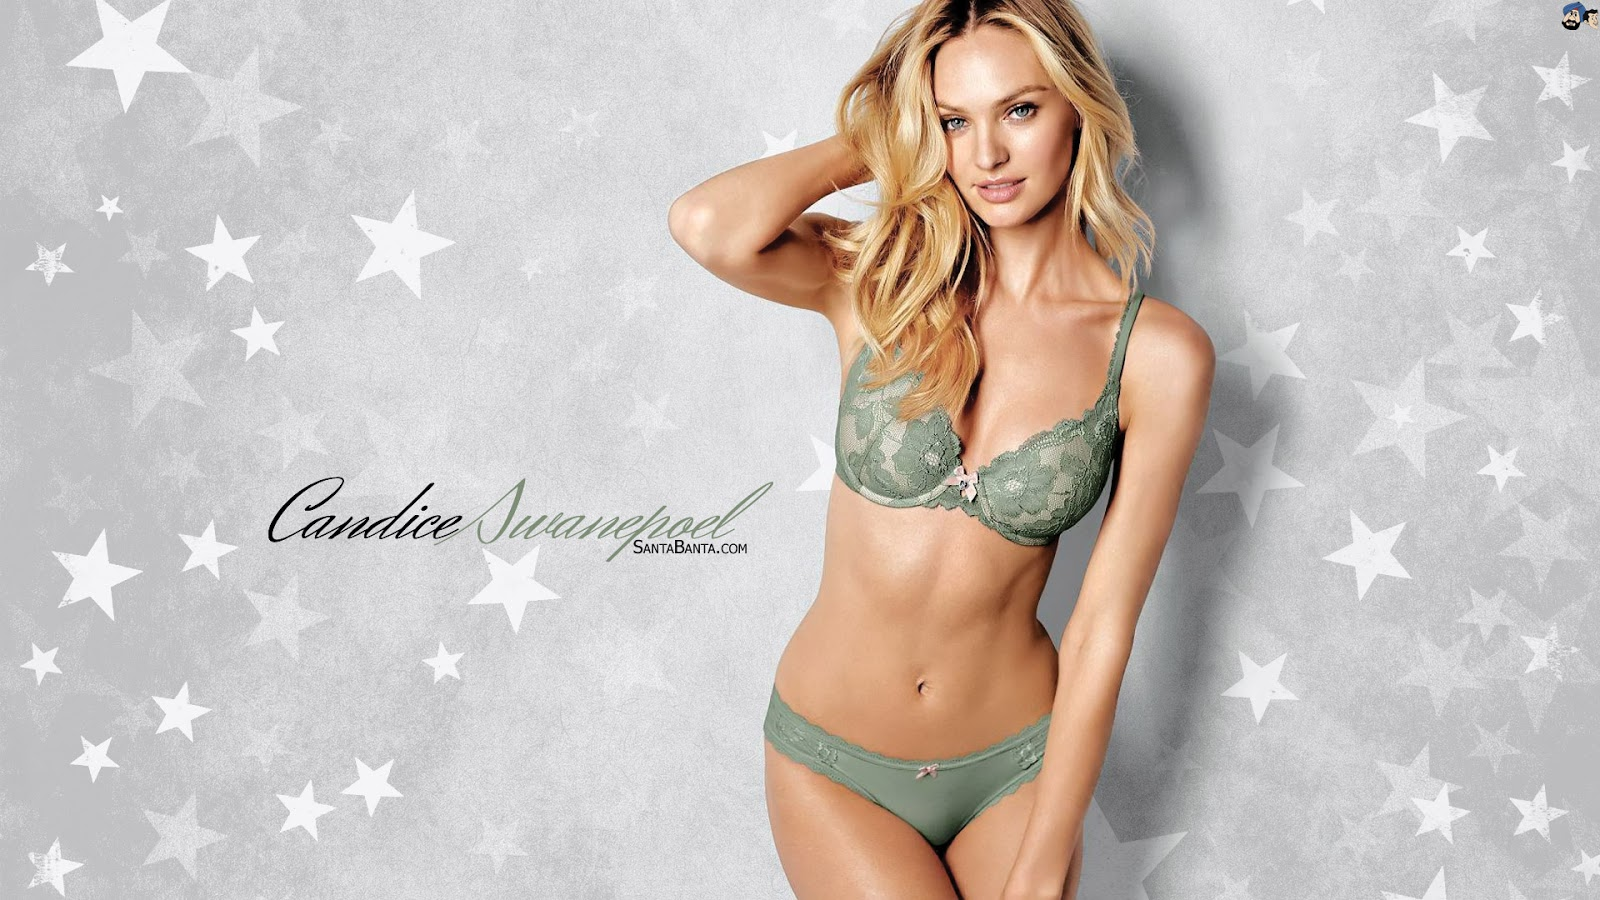 Cute Baby Wallpapers Free Download Desktop Candice Swanepoel Hd Wallpapers Most Beautiful Places In